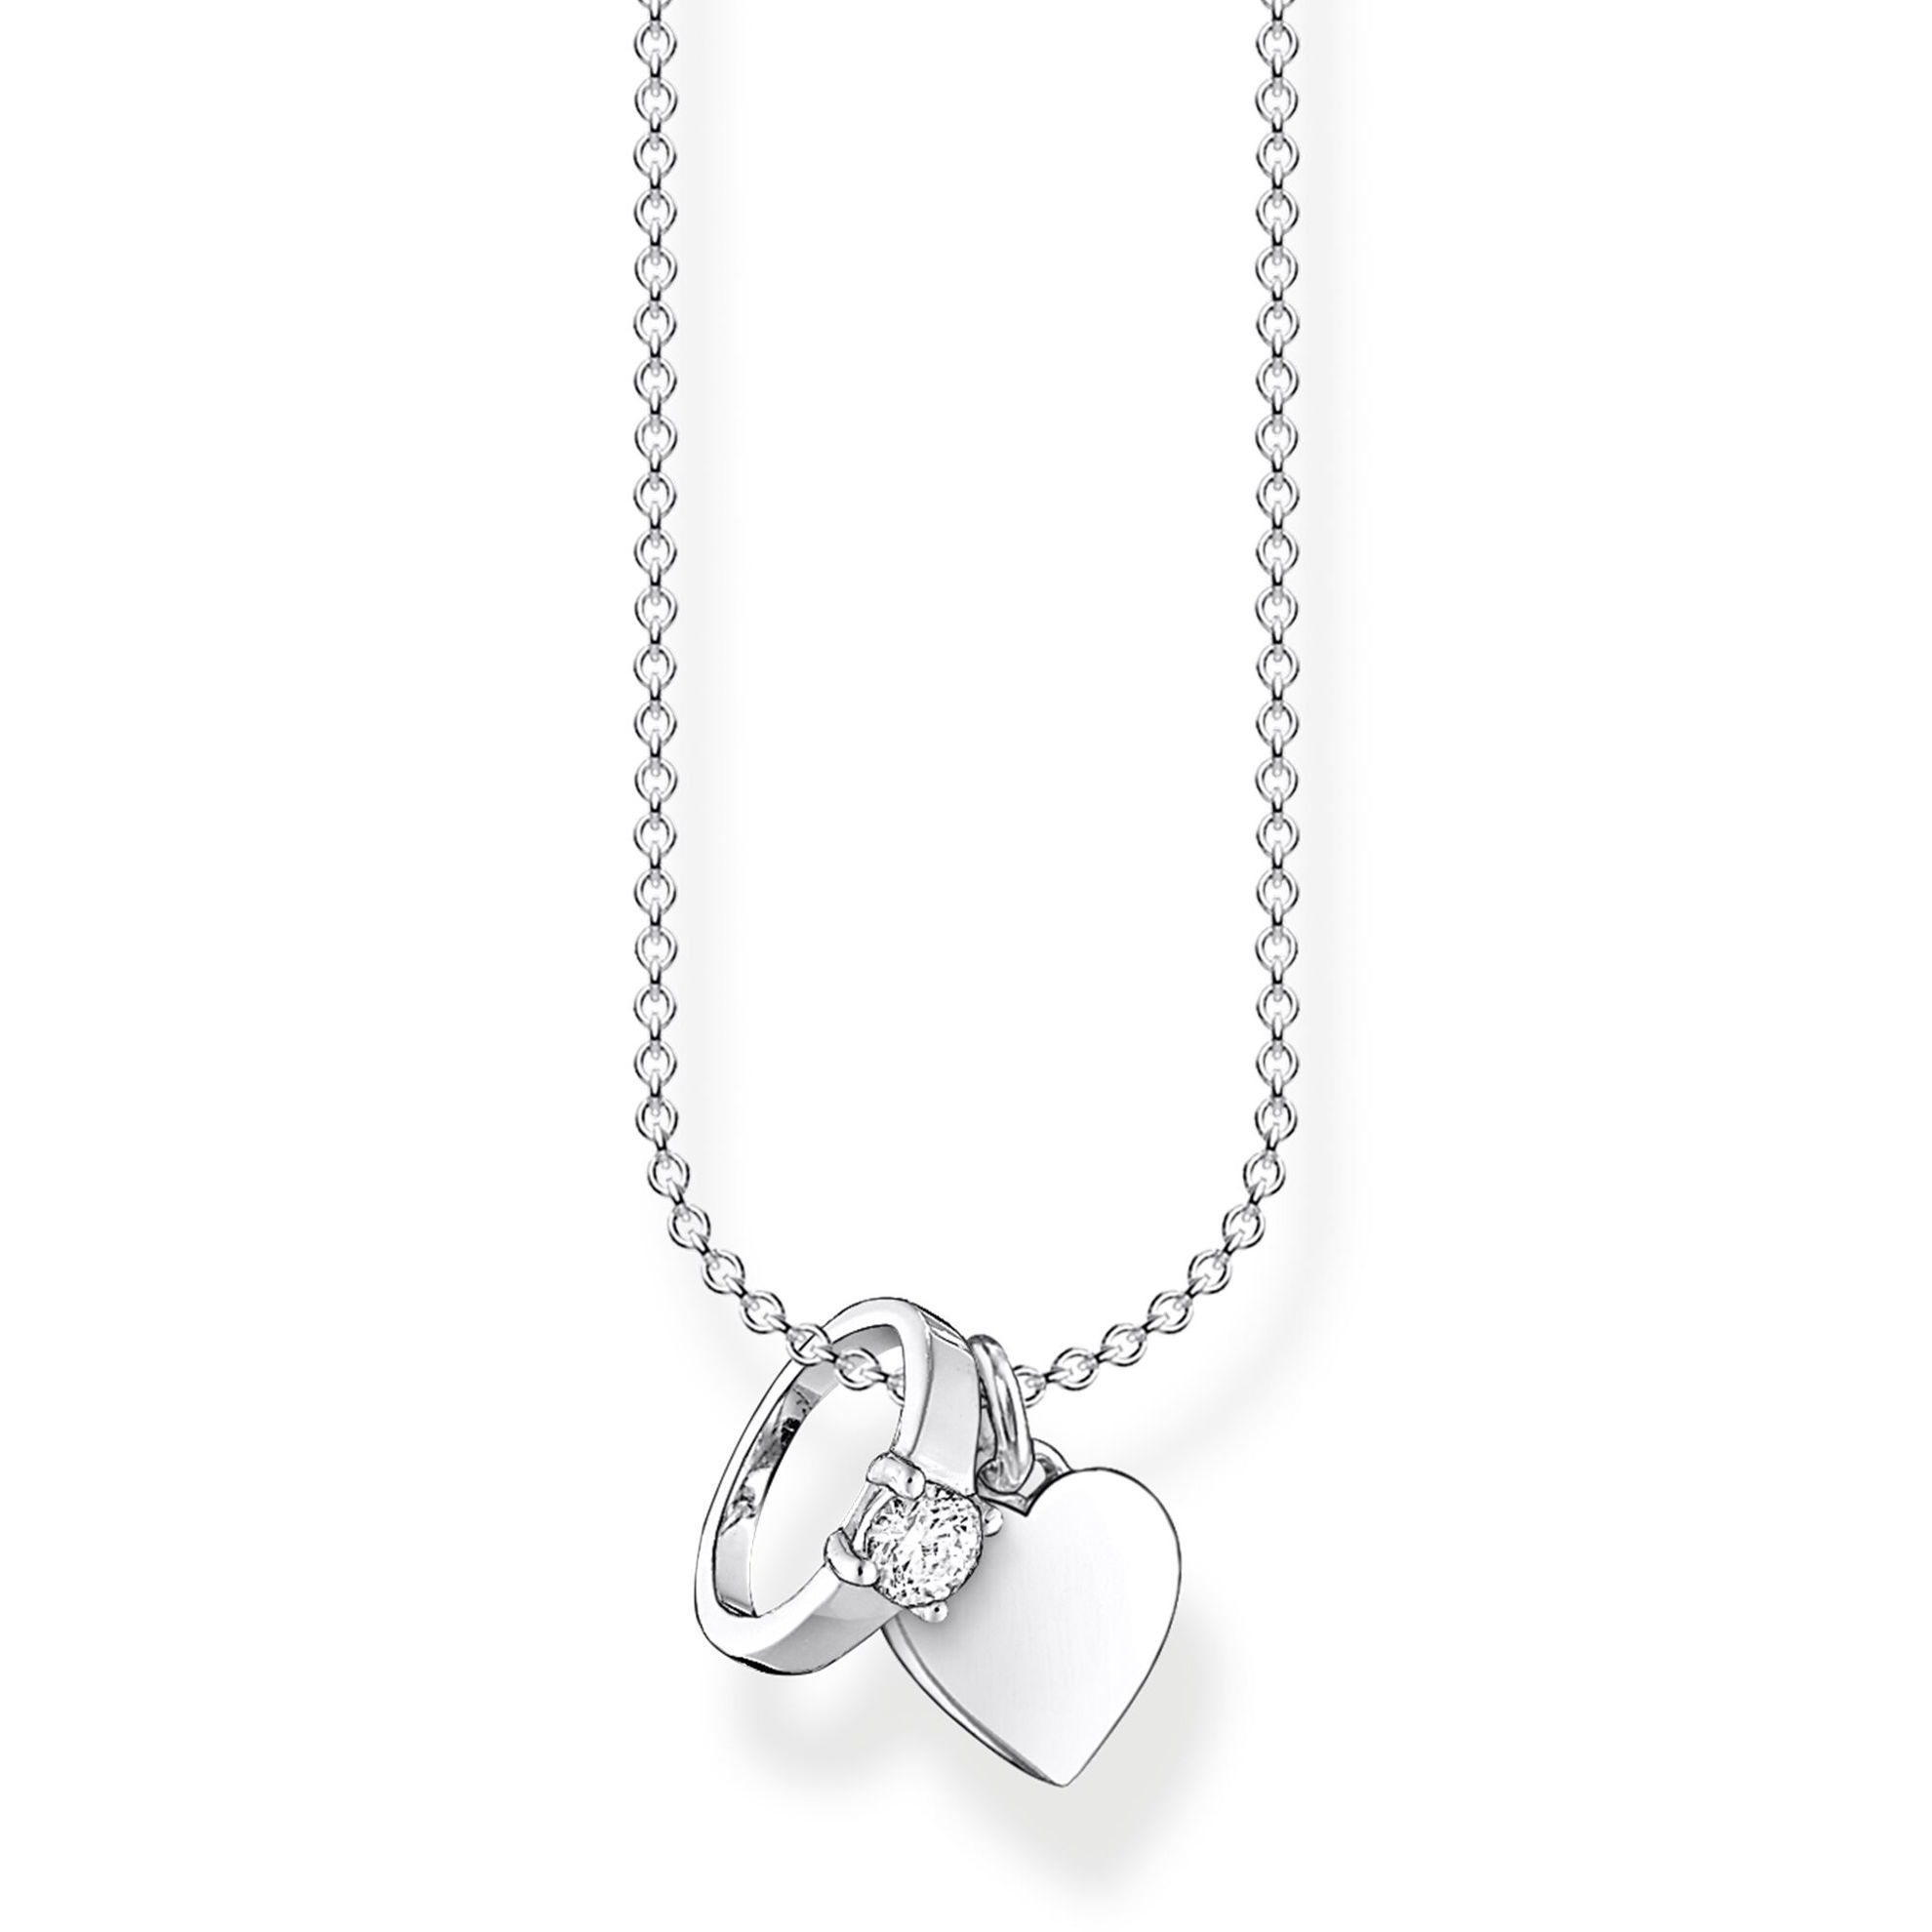 Picture of Ring and Heart Necklace